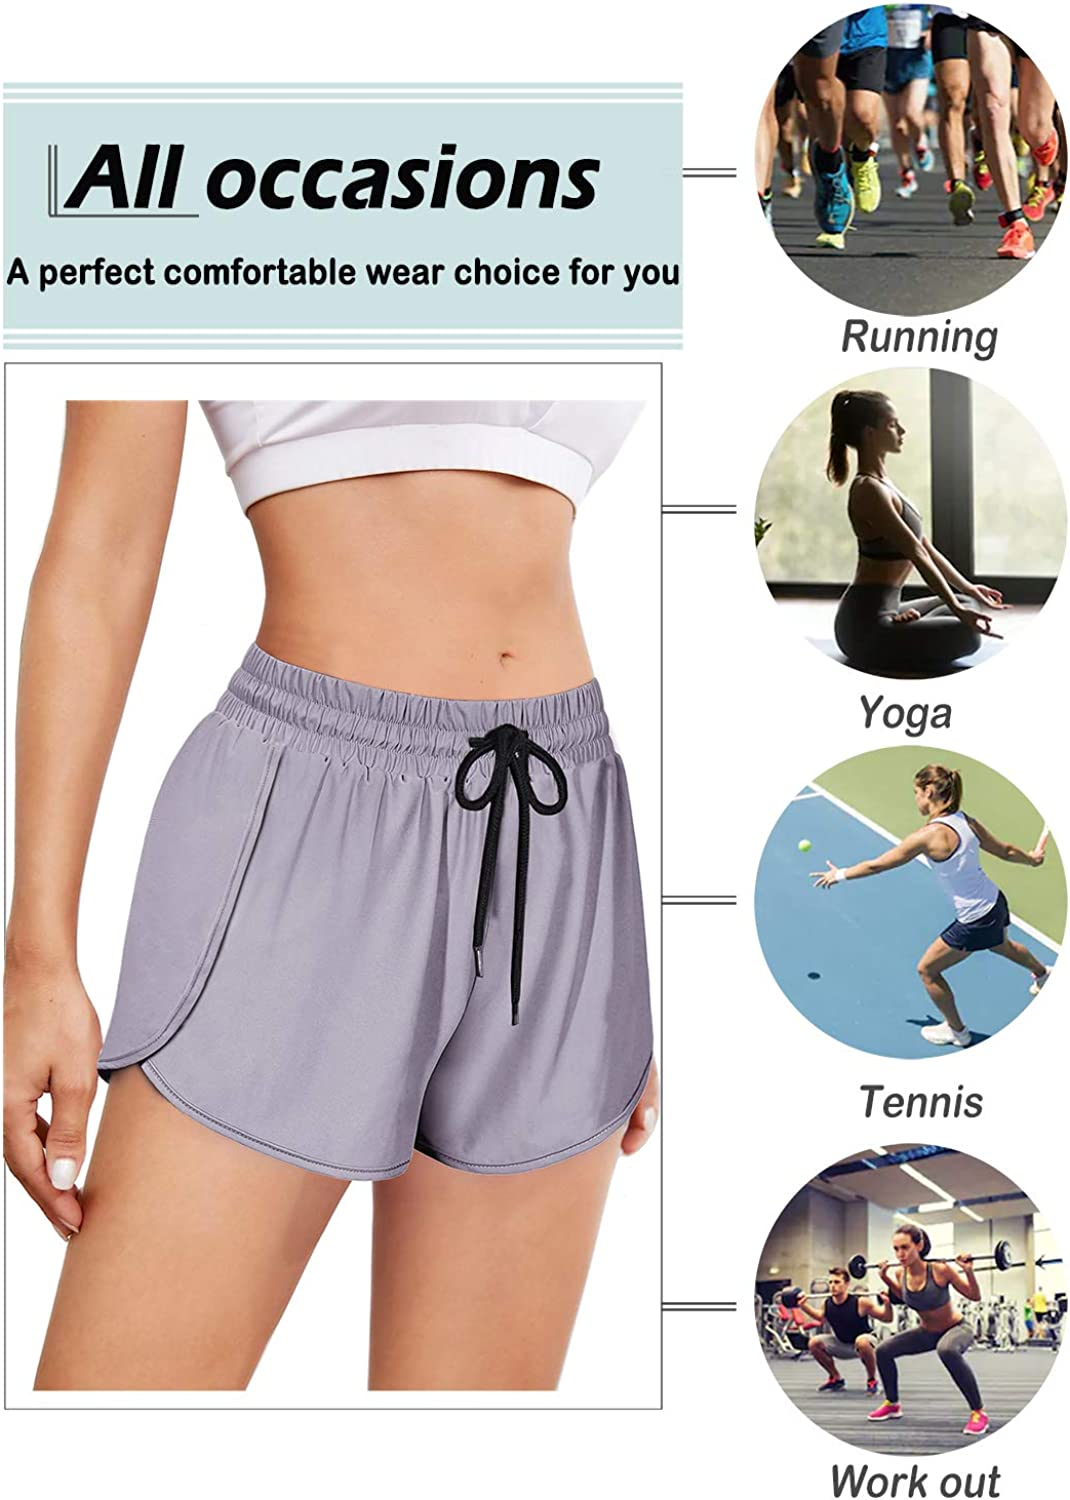 Yakestyle Gym Shorts for Women Soft 2 in 1 Yoga Workout Short for Teen Girls Running Activewear Short with Spandex Liner High Elastic Fitness Basketball Short Black M